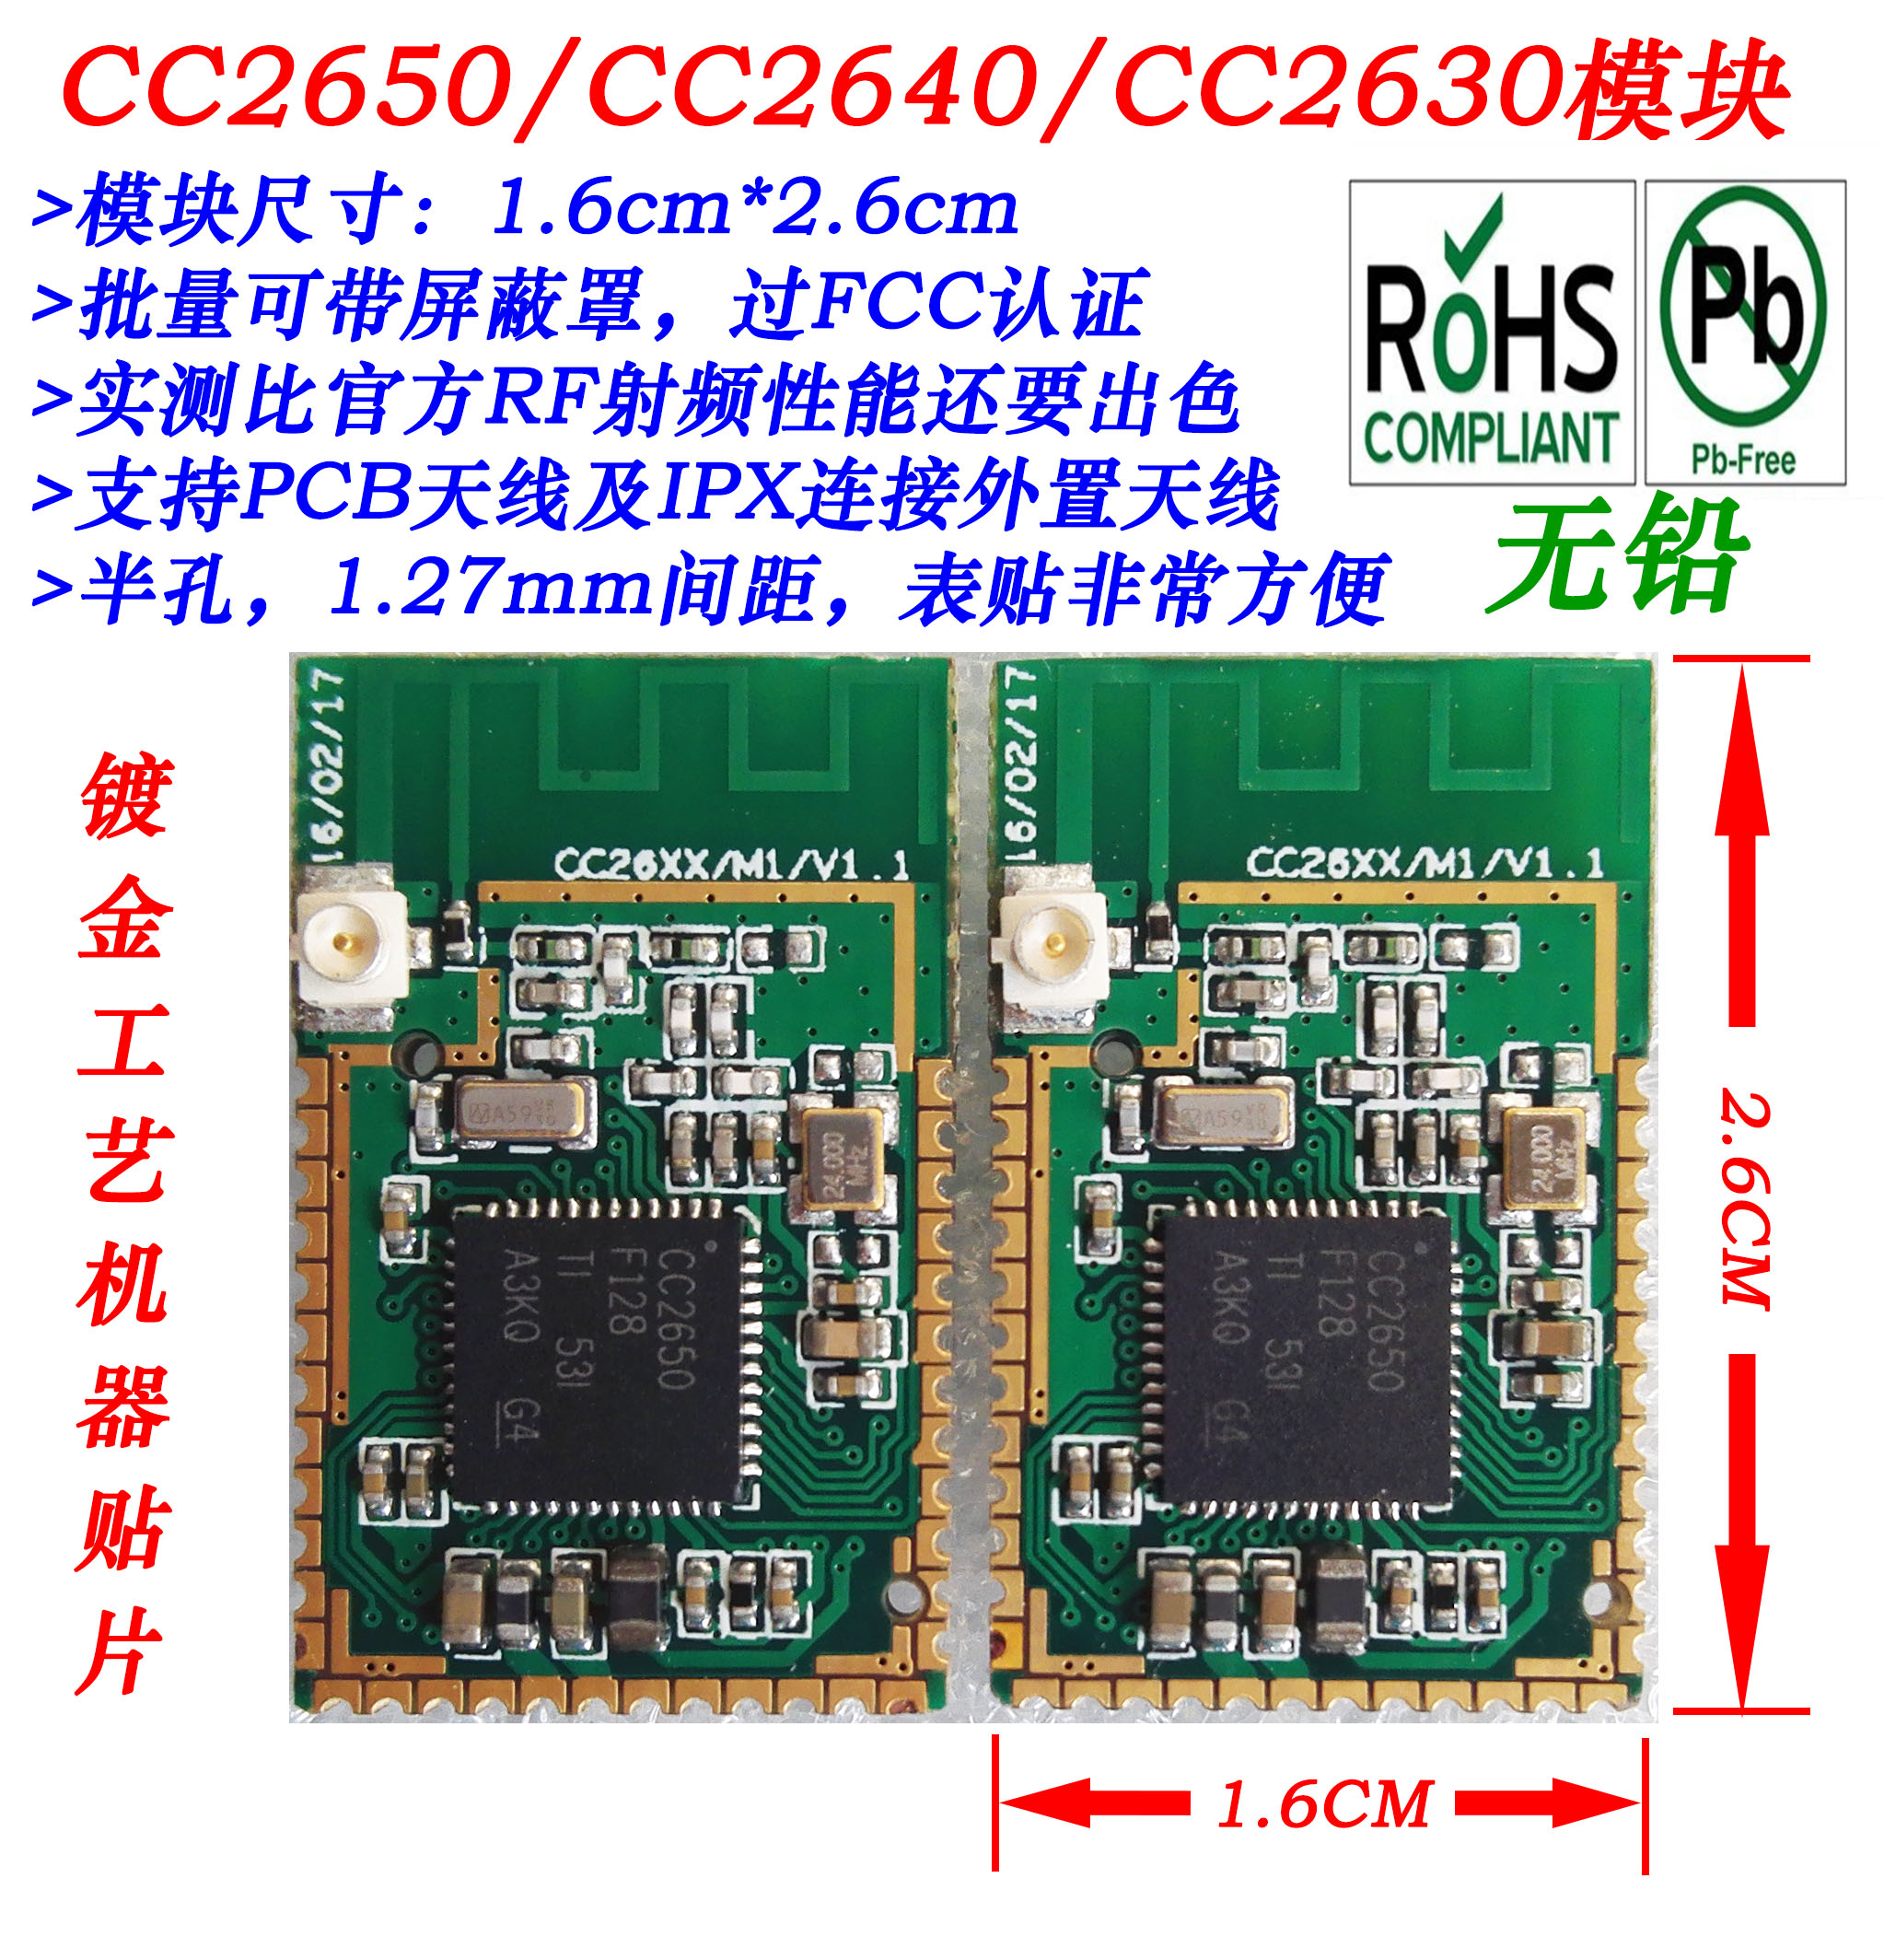 small resolution of cc2640 cc2630 cc2650 bluetooth module zigbee module cc2640 module in air conditioner parts from home appliances on aliexpress com alibaba group